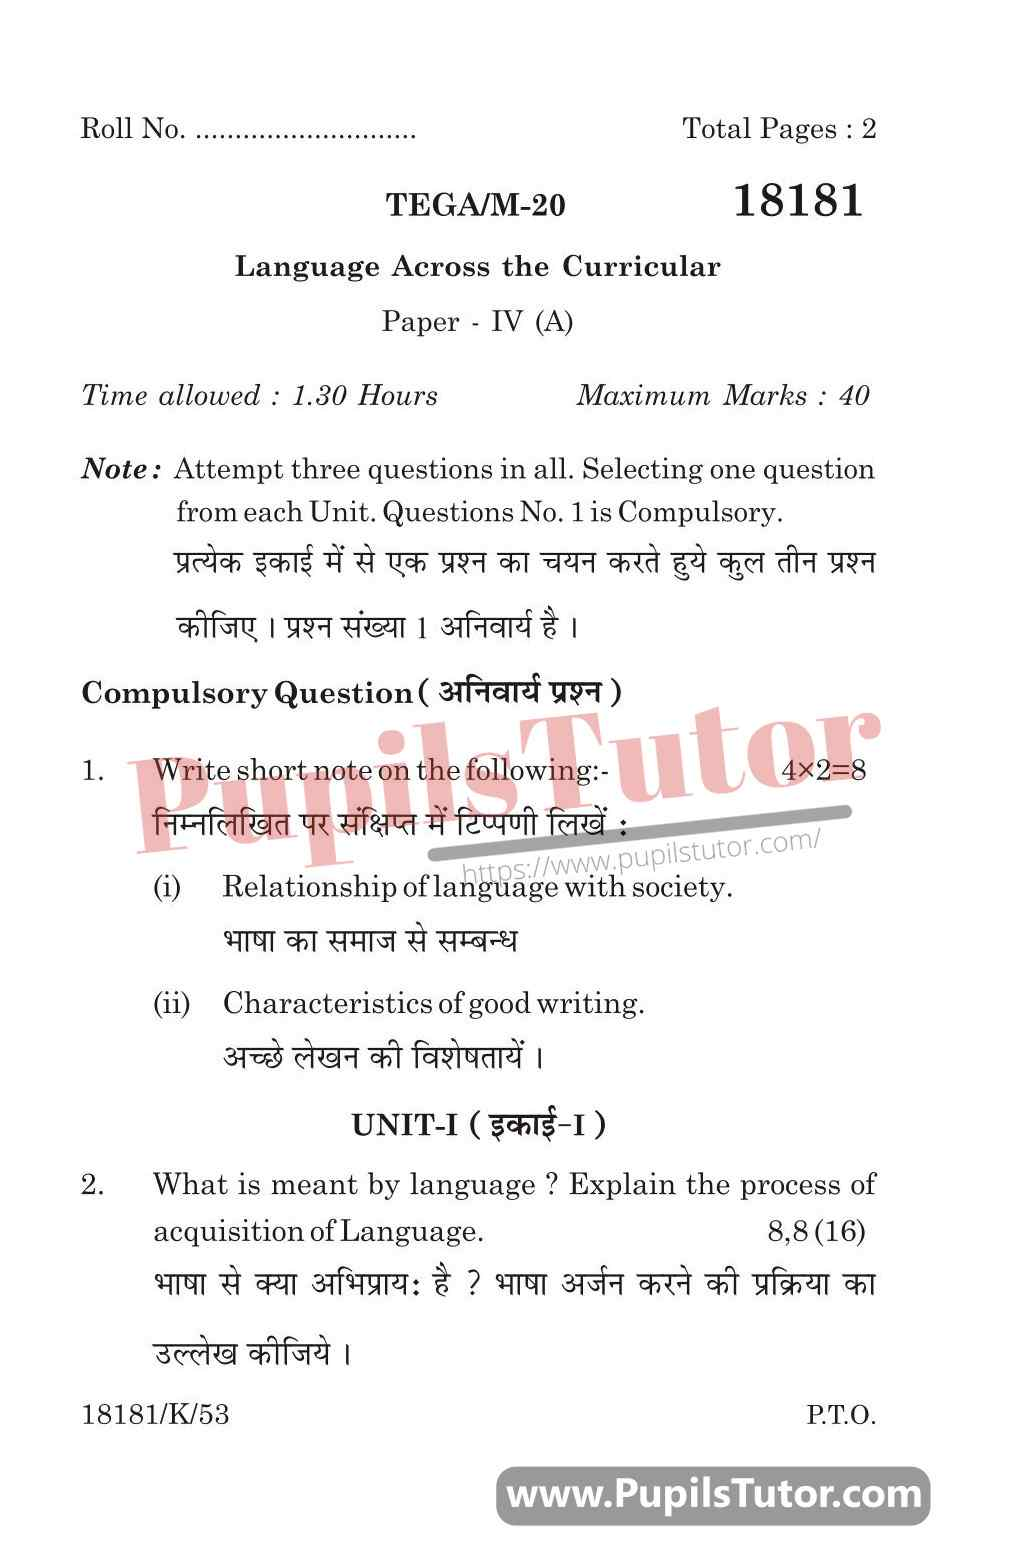 KUK (Kurukshetra University, Haryana) Language Across The Curricular Question Paper 2020 For B.Ed 1st And 2nd Year And All The 4 Semesters In English And Hindi Medium Free Download PDF - Page 1 - Pupils Tutor